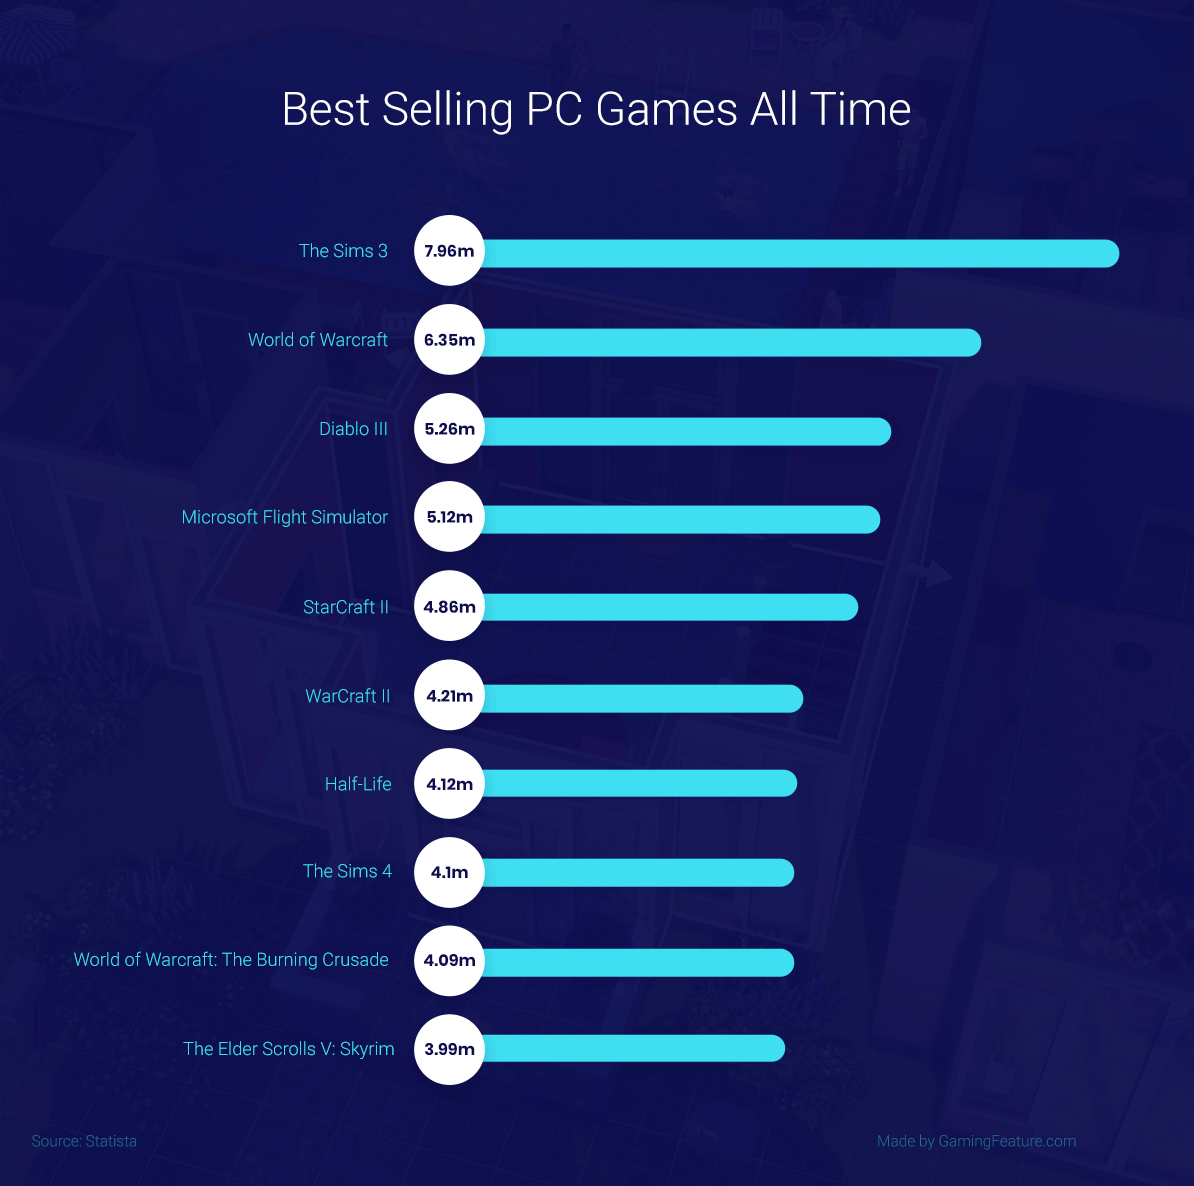 Best Selling PC Games All Time